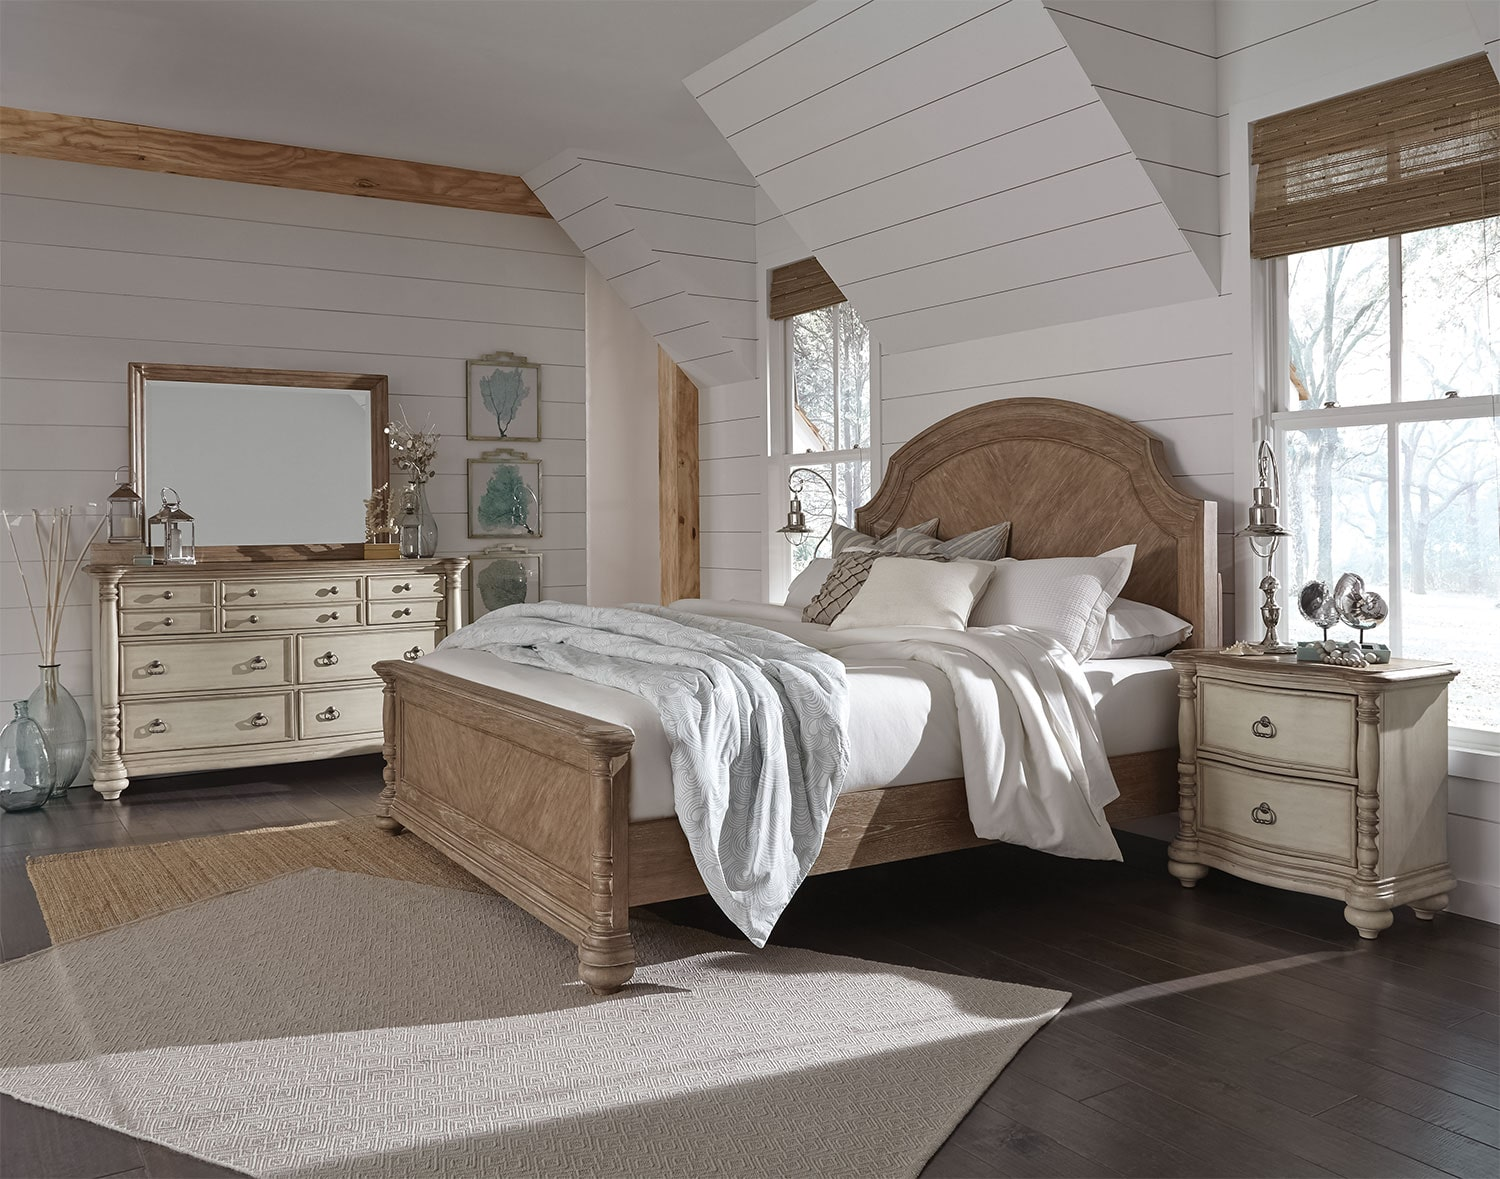 Willow Springs 4-Piece King Bedroom Set - Pecan and Cream